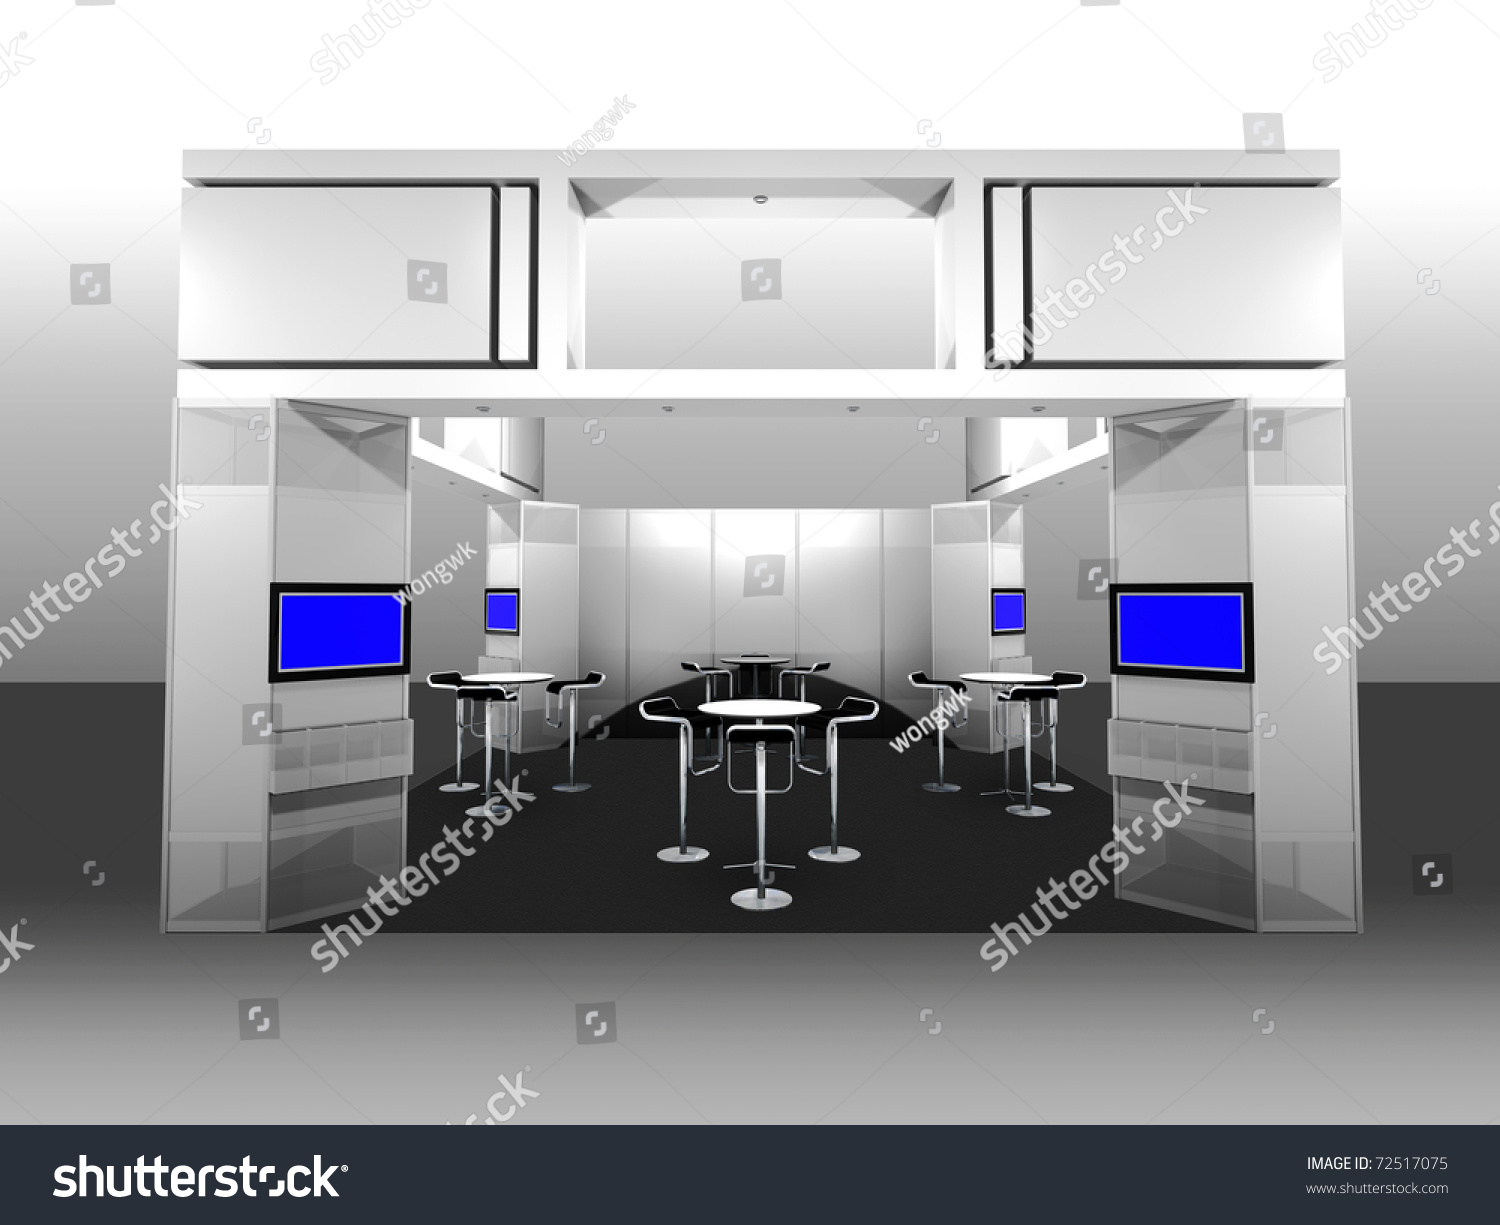 Exhibition Booth Area : D render of a blank trade exhibition booth with display